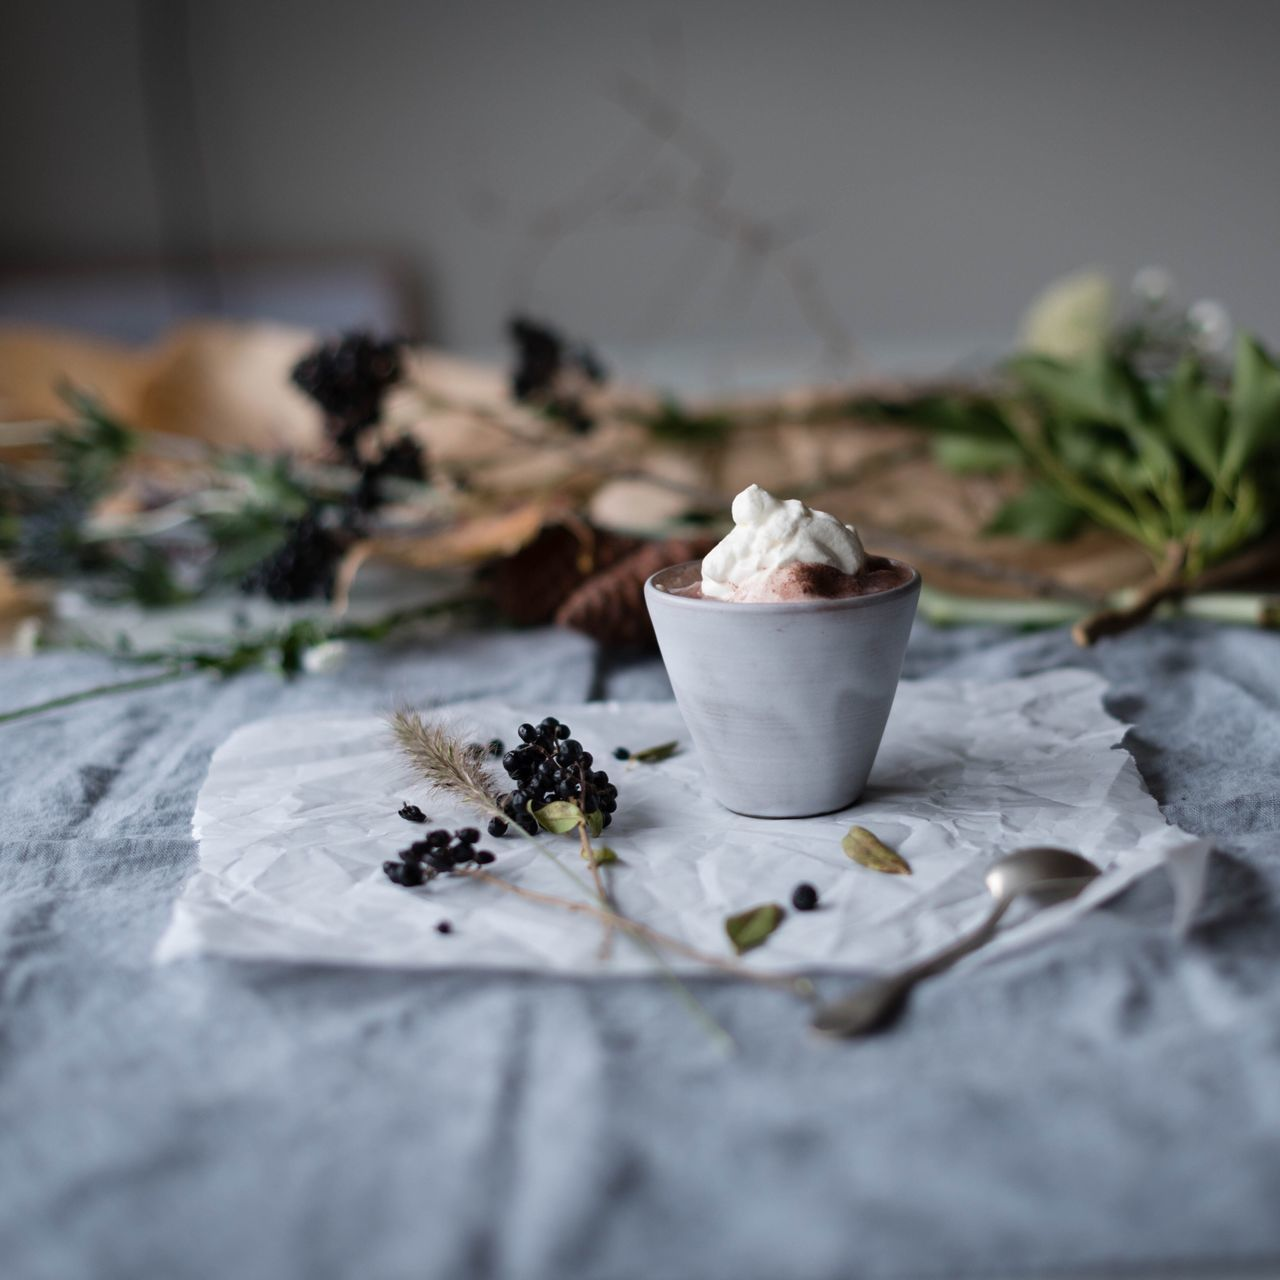 Hot chocolate in cup and food on tissue paper over table